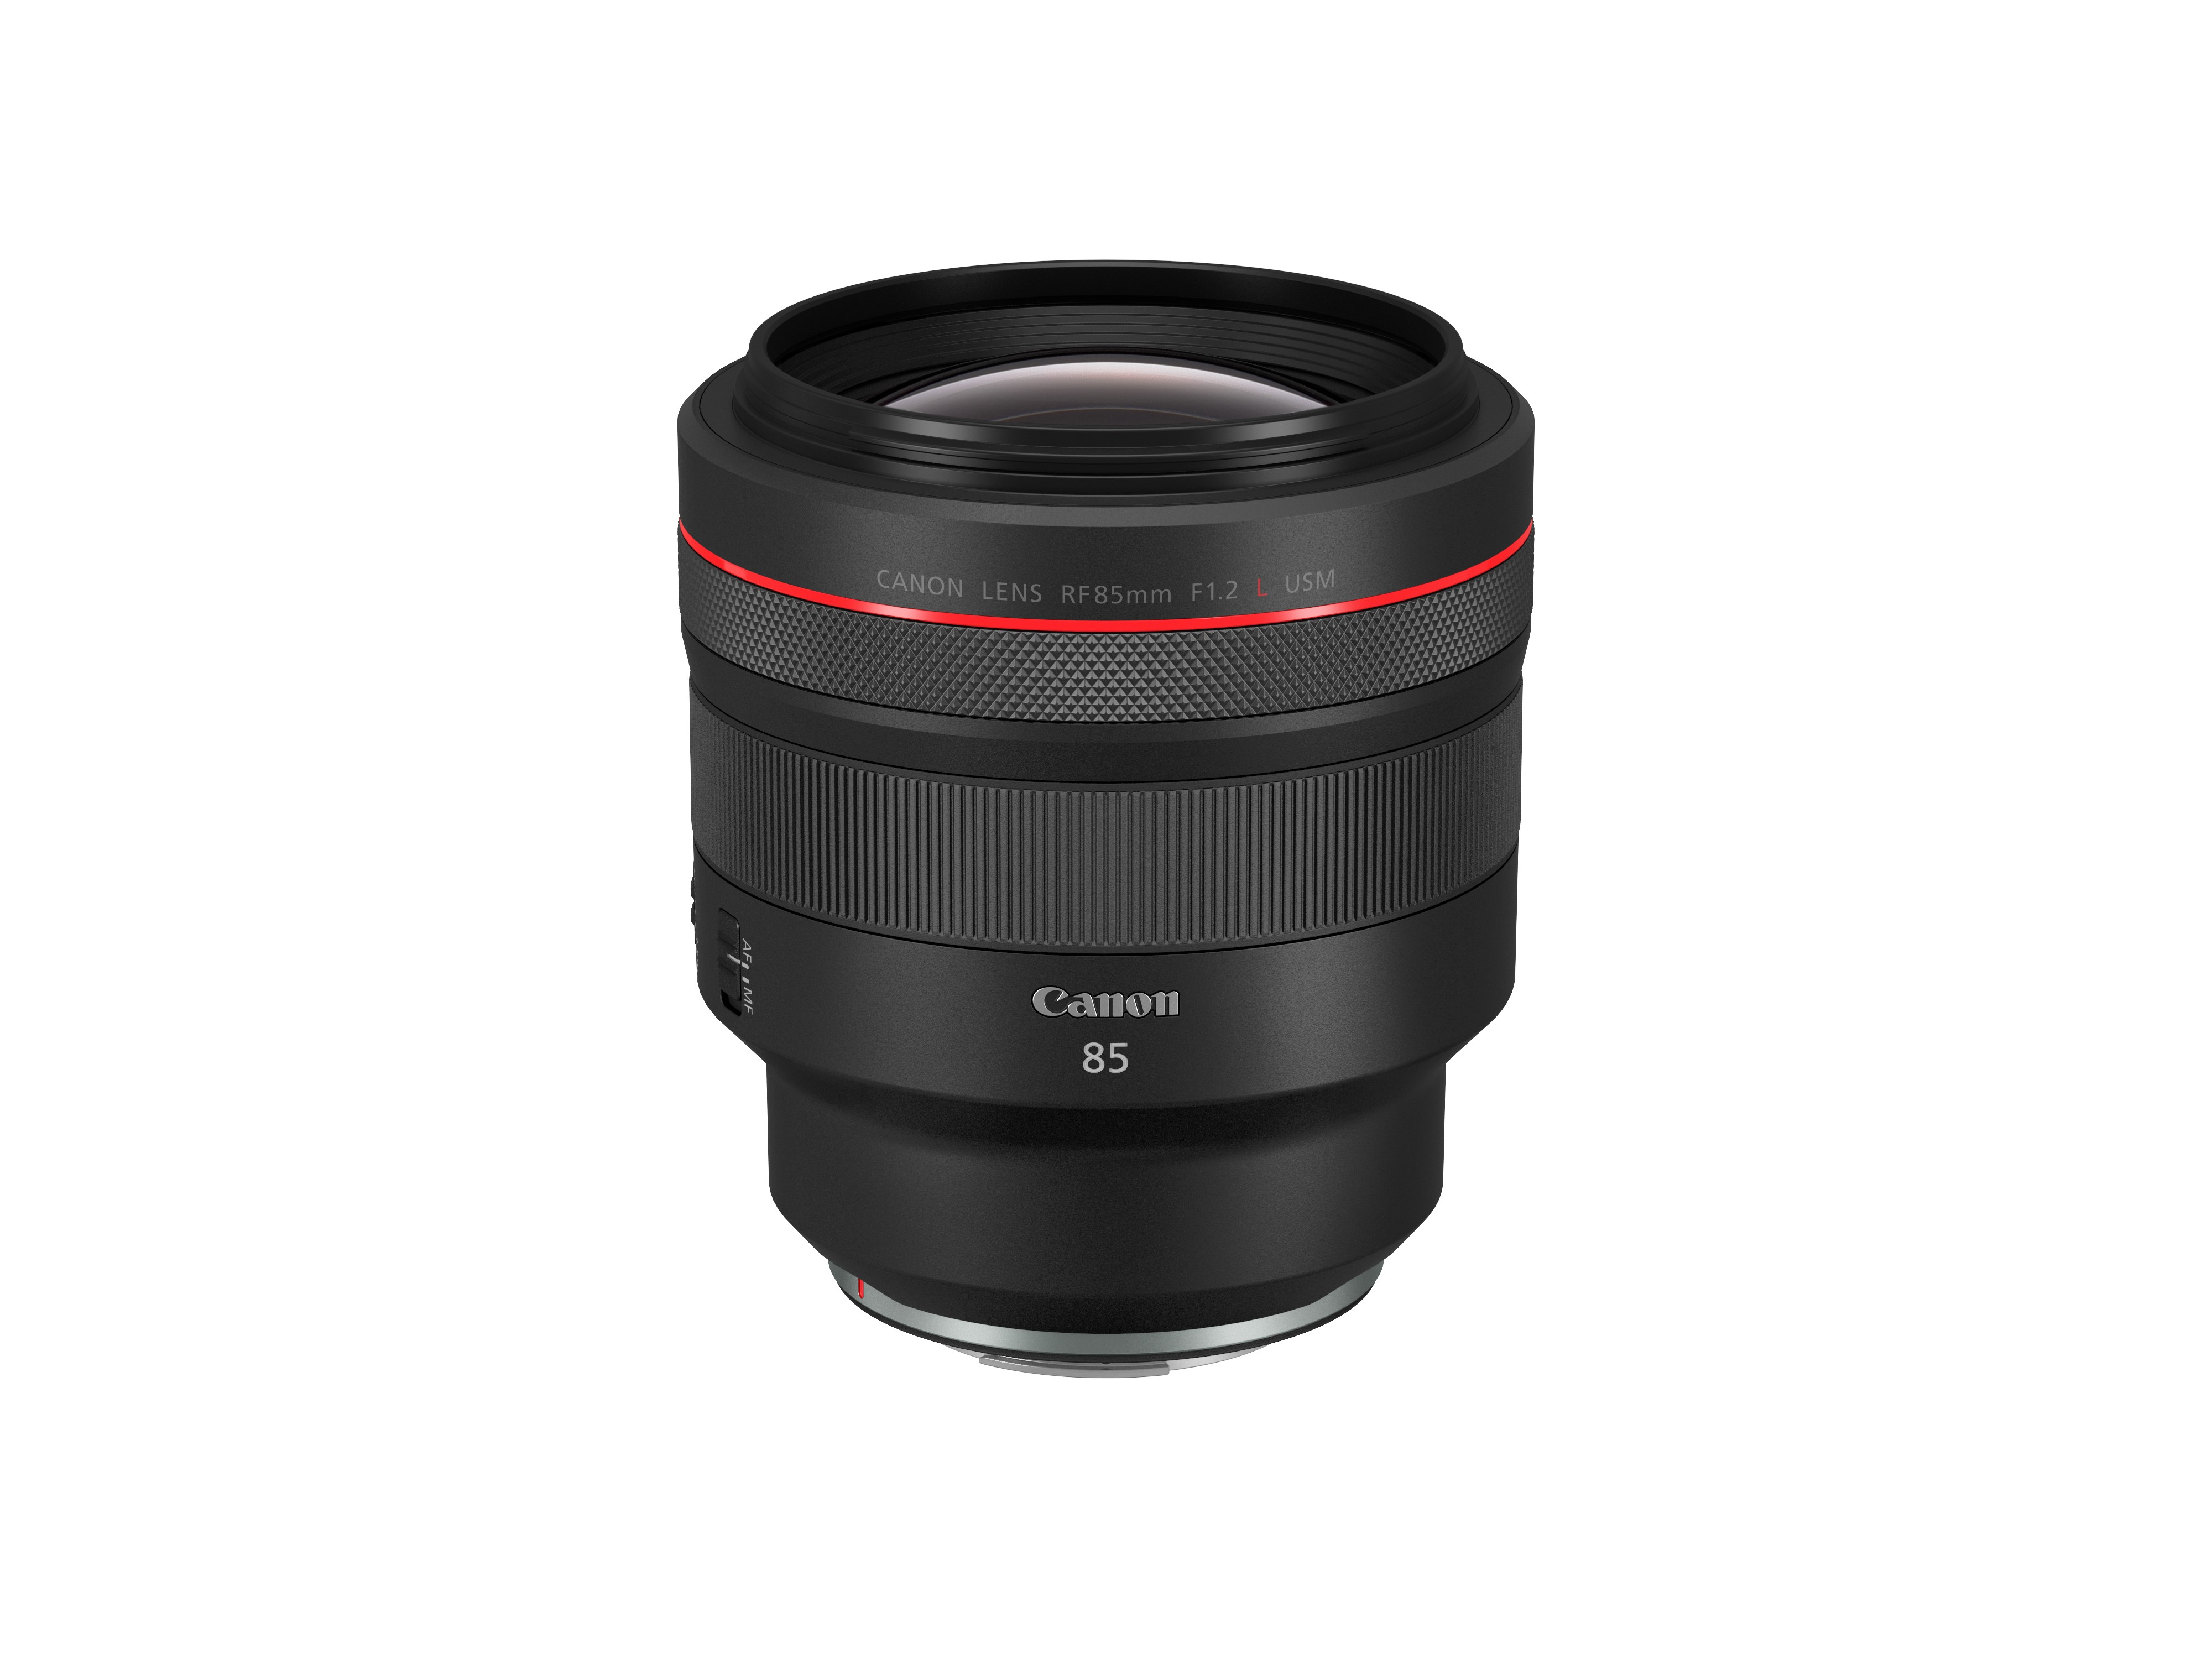 Canon launches RF 85mm F1.2L USM – offers Canon's highest resolution yet